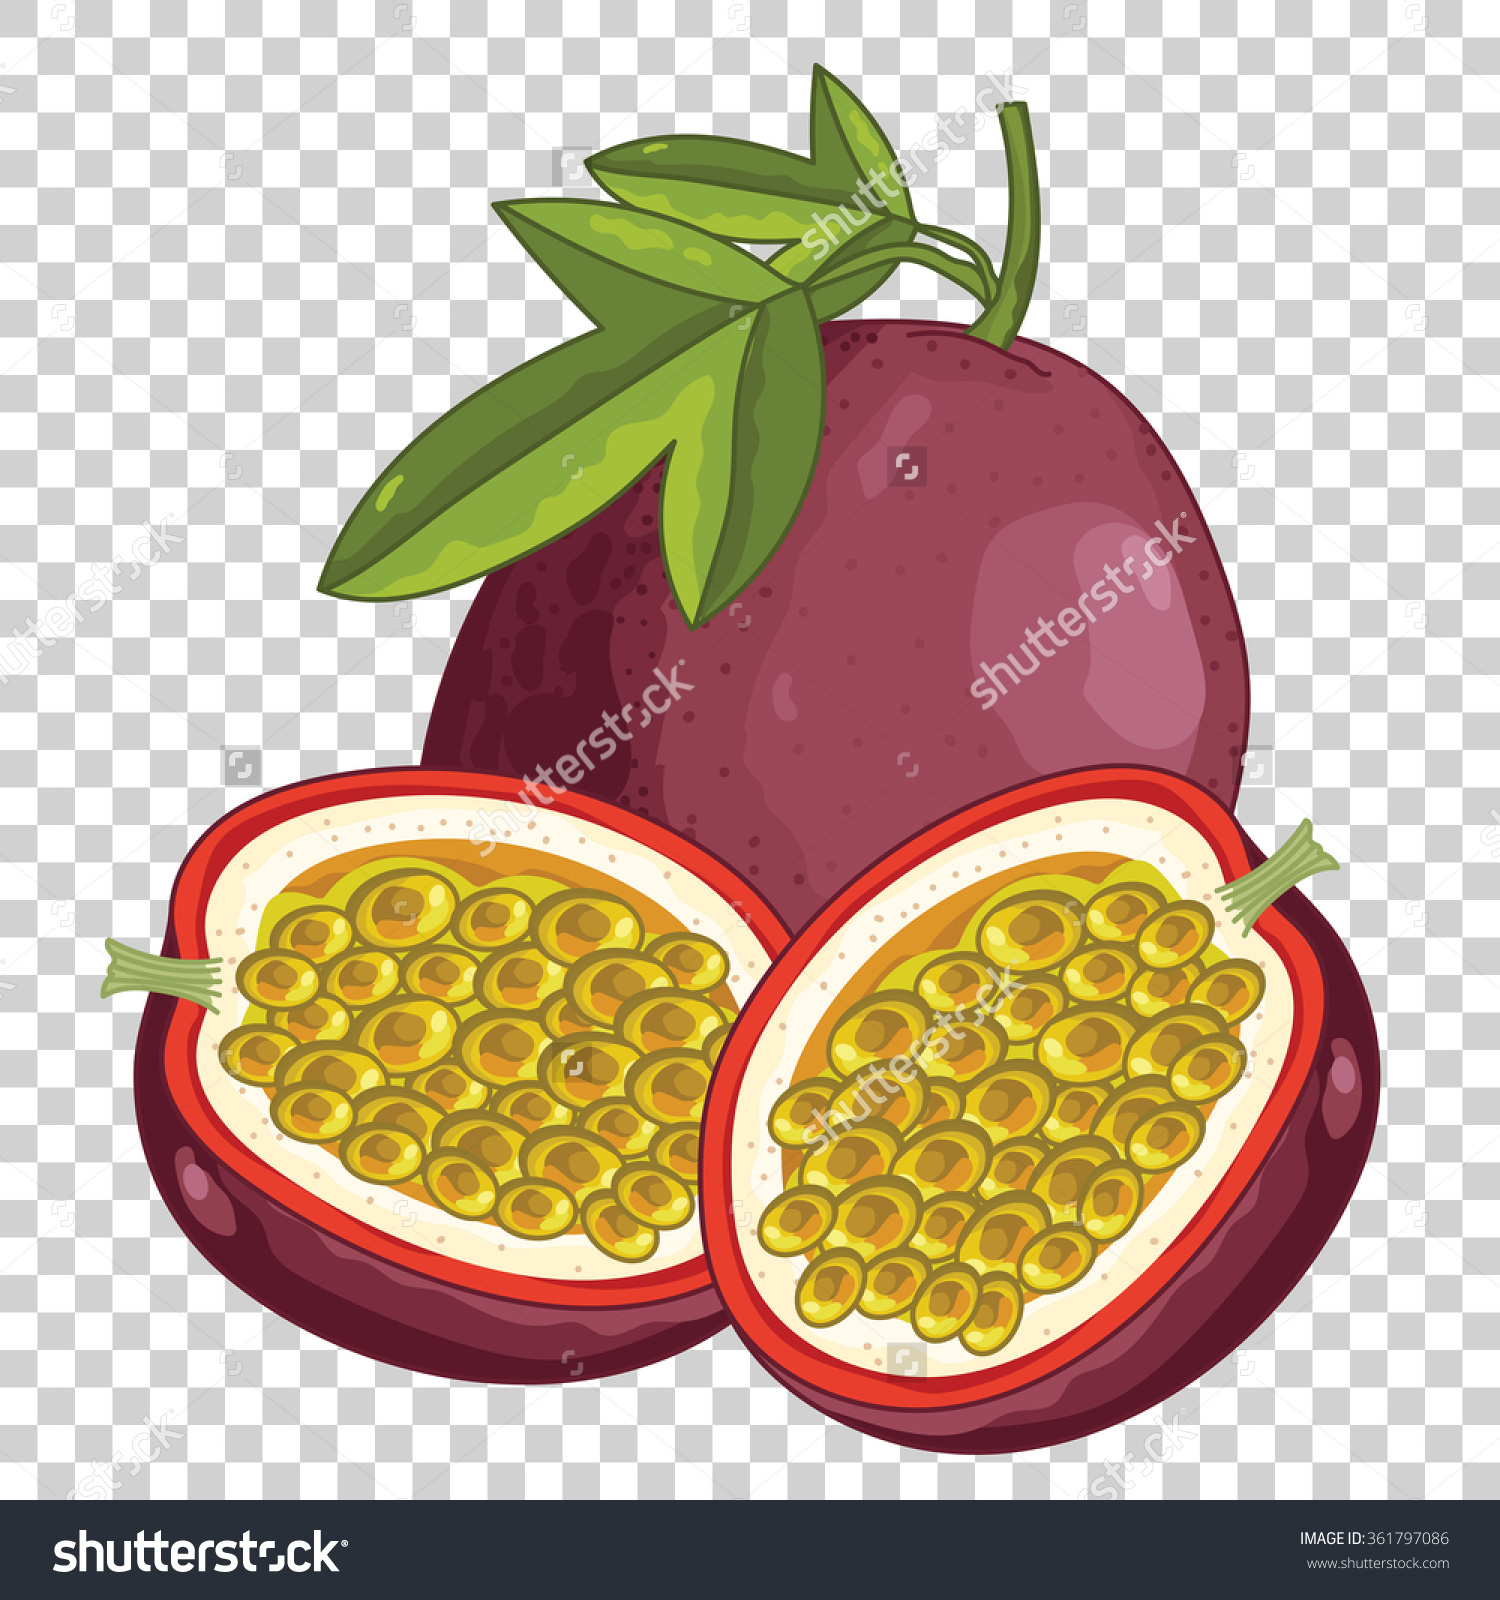 Passion Fruit Vector Isolated On Transparent Stock Vector.